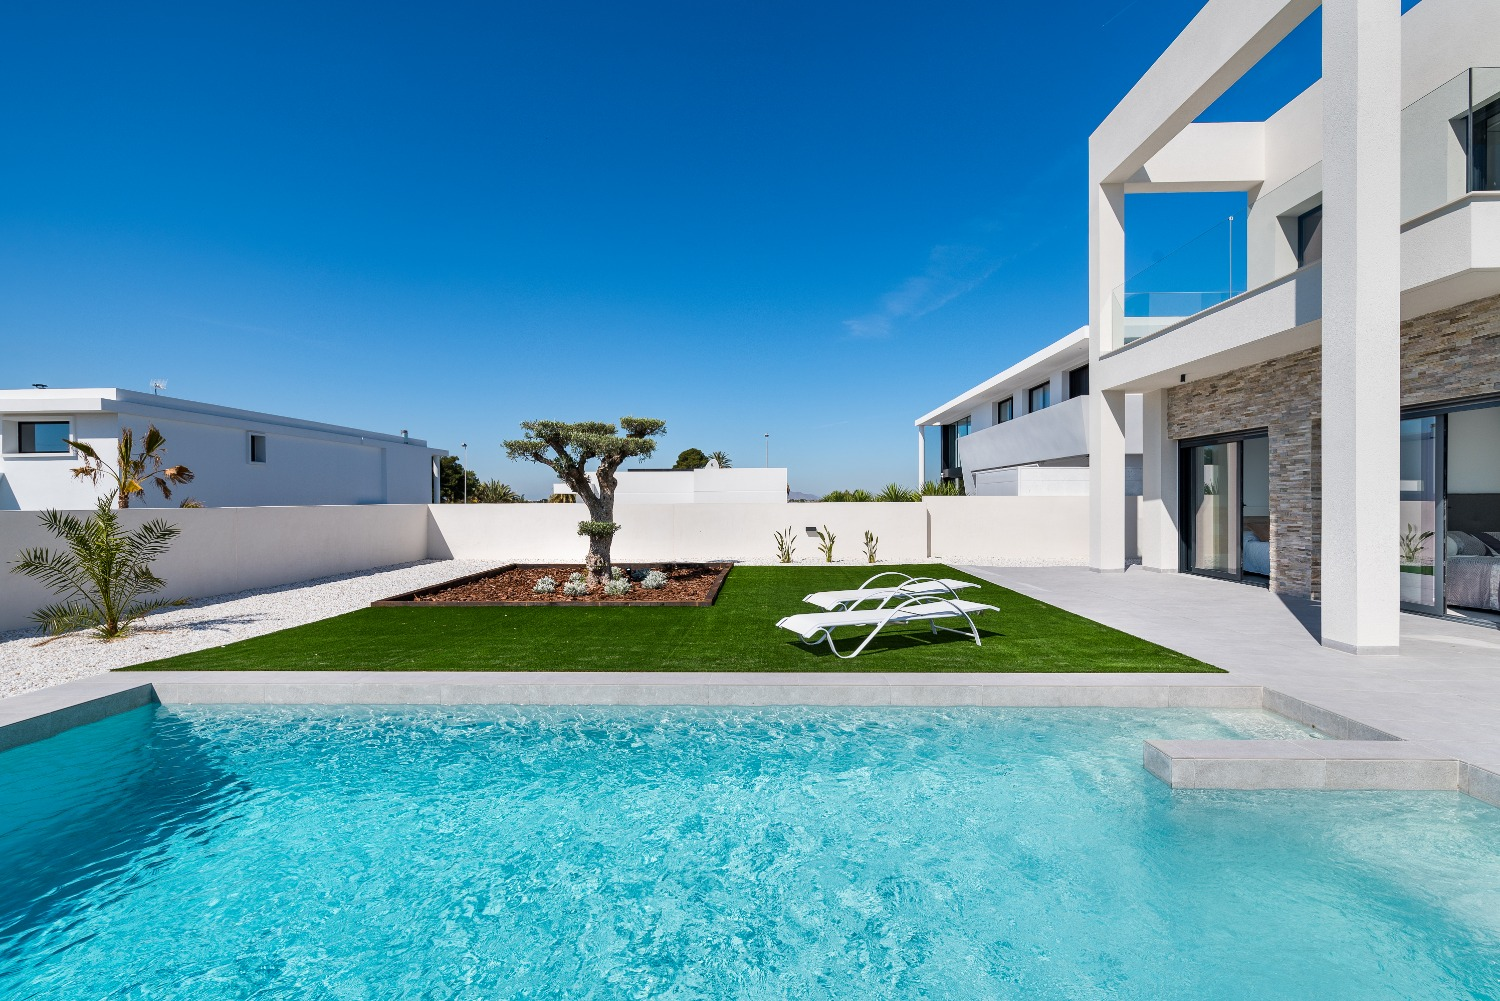 Incredible new build 3 or 4 bedroom detached villa, with basement and private pool on La Marina Urbanization